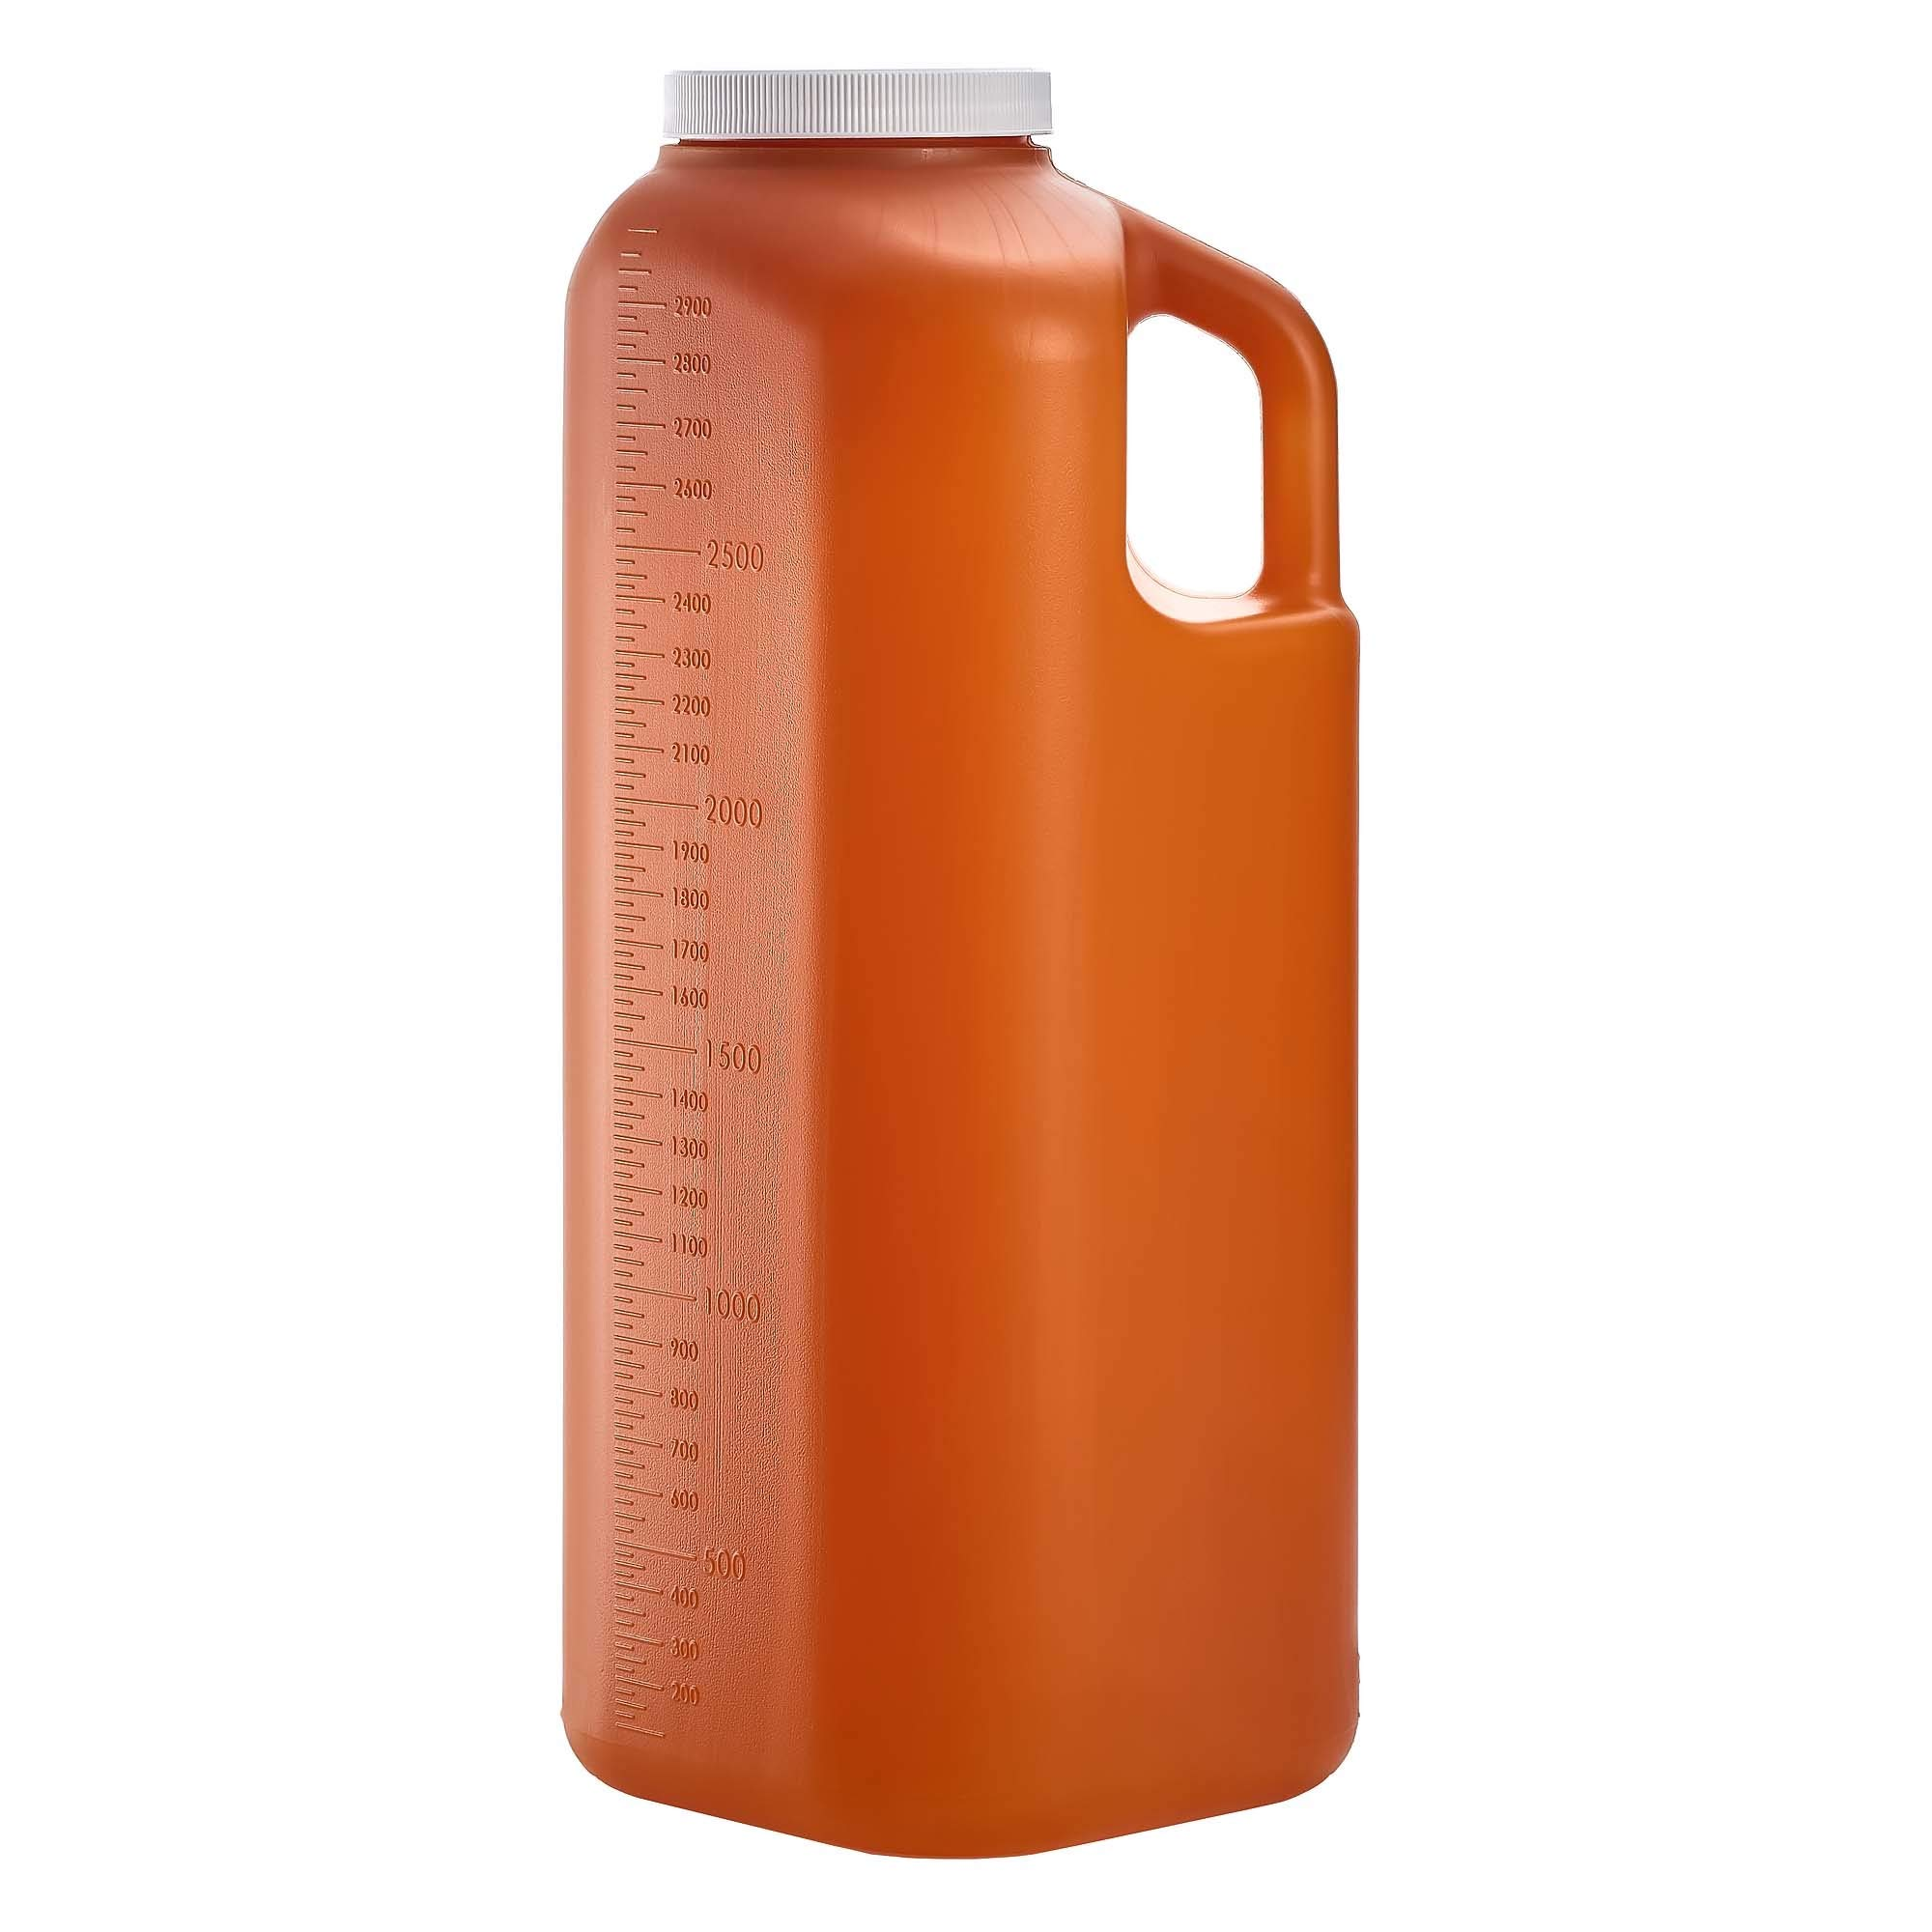 Large Male Urinal with Leak Proof Screw Cap Lid (3000 mL or 101 oz.) (Amber Color)